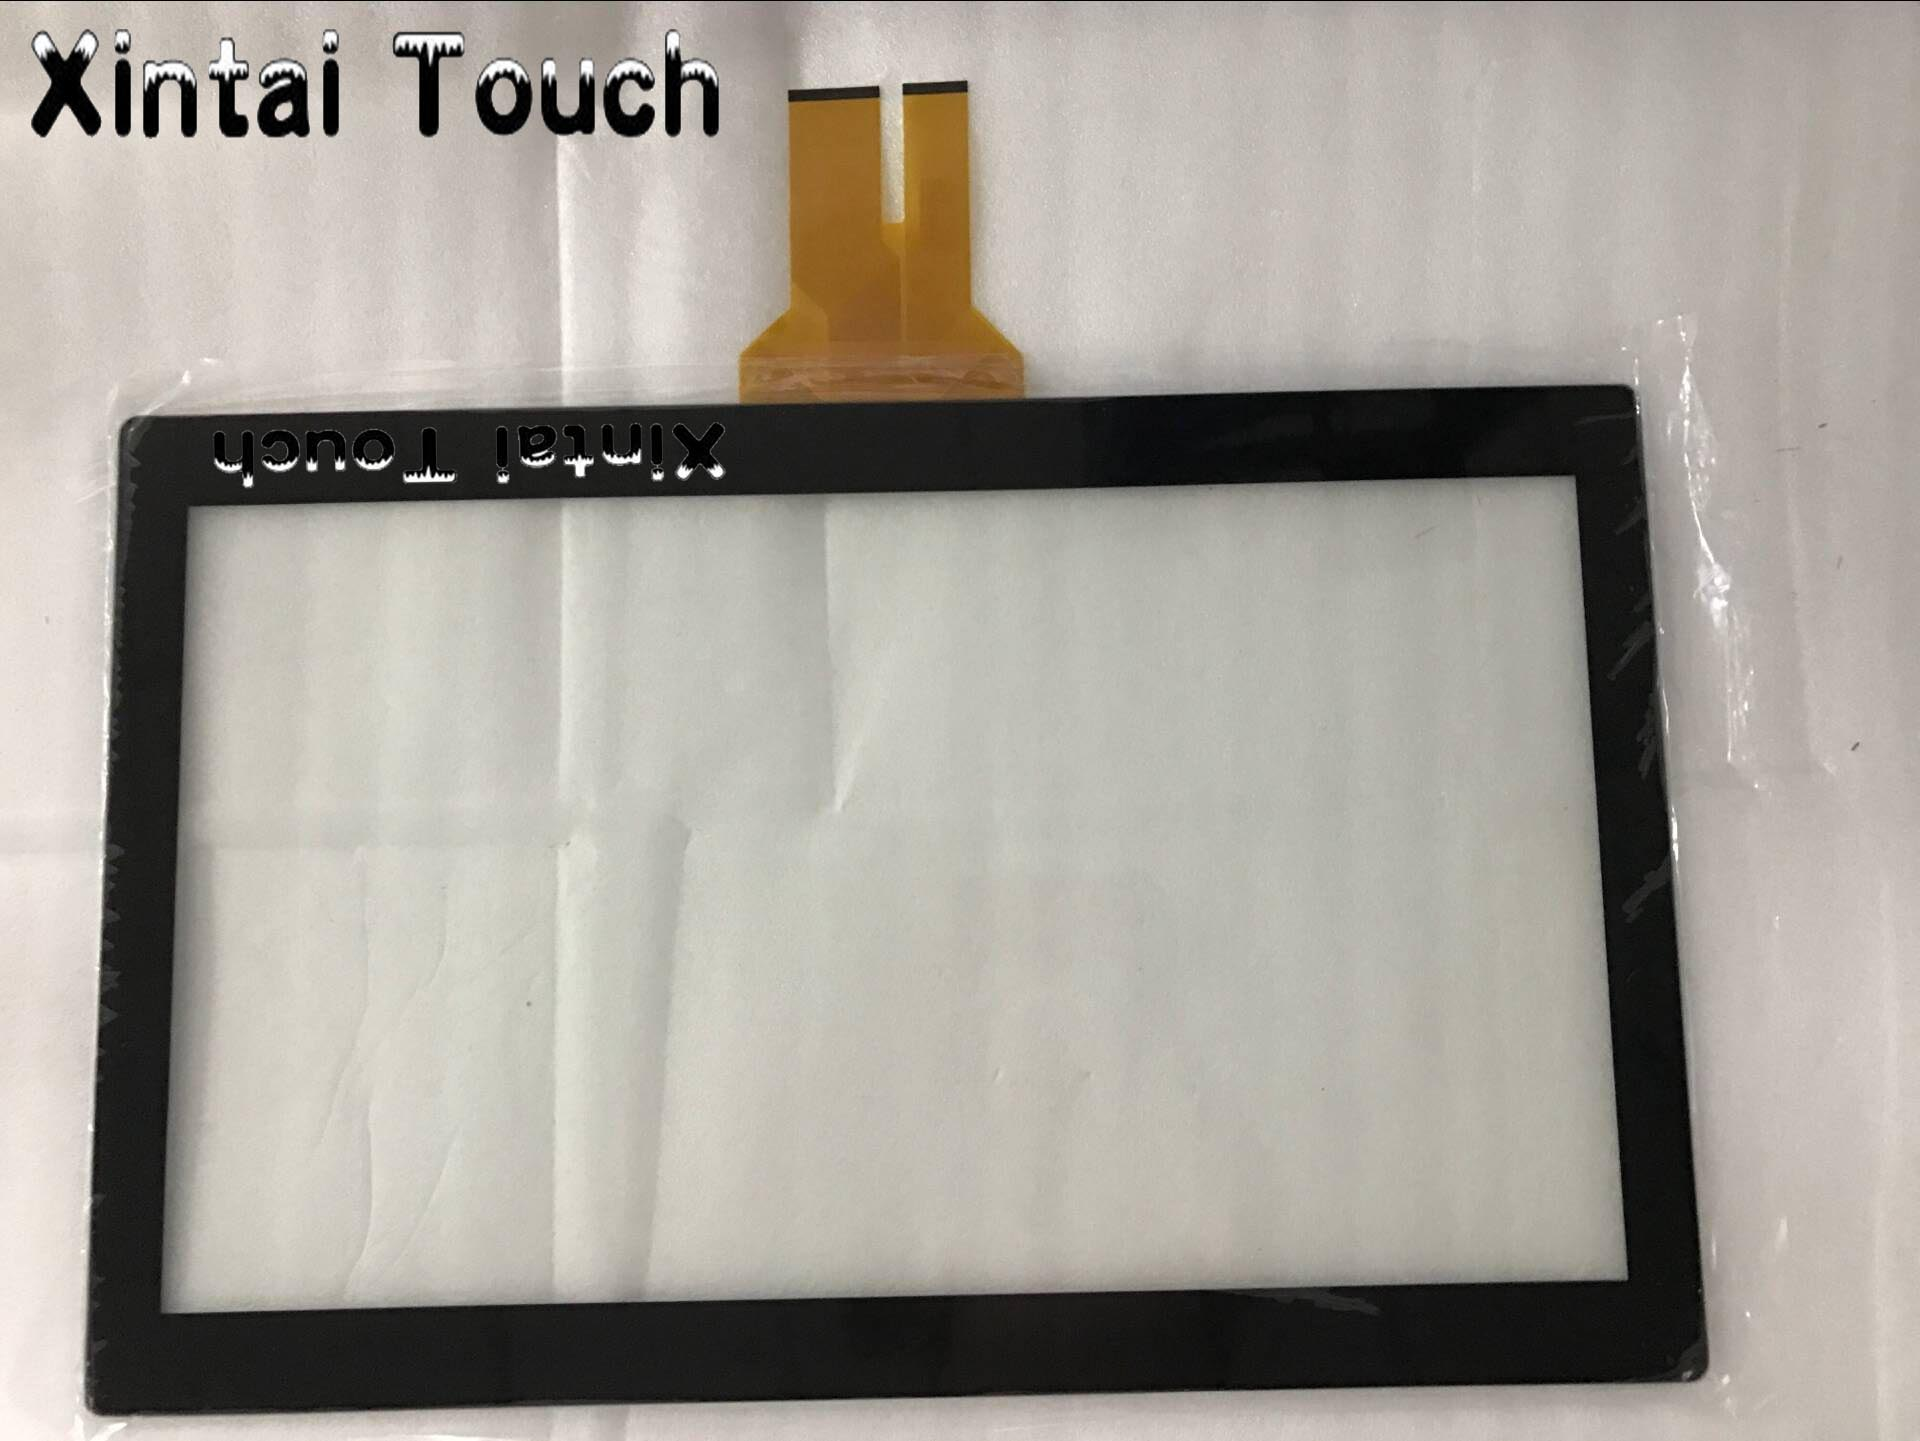 2016 Hot selling 15 Inch 10 points Capacitive Multi Touch Screen Overlay Panel Kit for Industrial Monitor with EETI controller free shipping 20 multi ir touch frame 2 points infrared touch screen overlay kit for kiosk